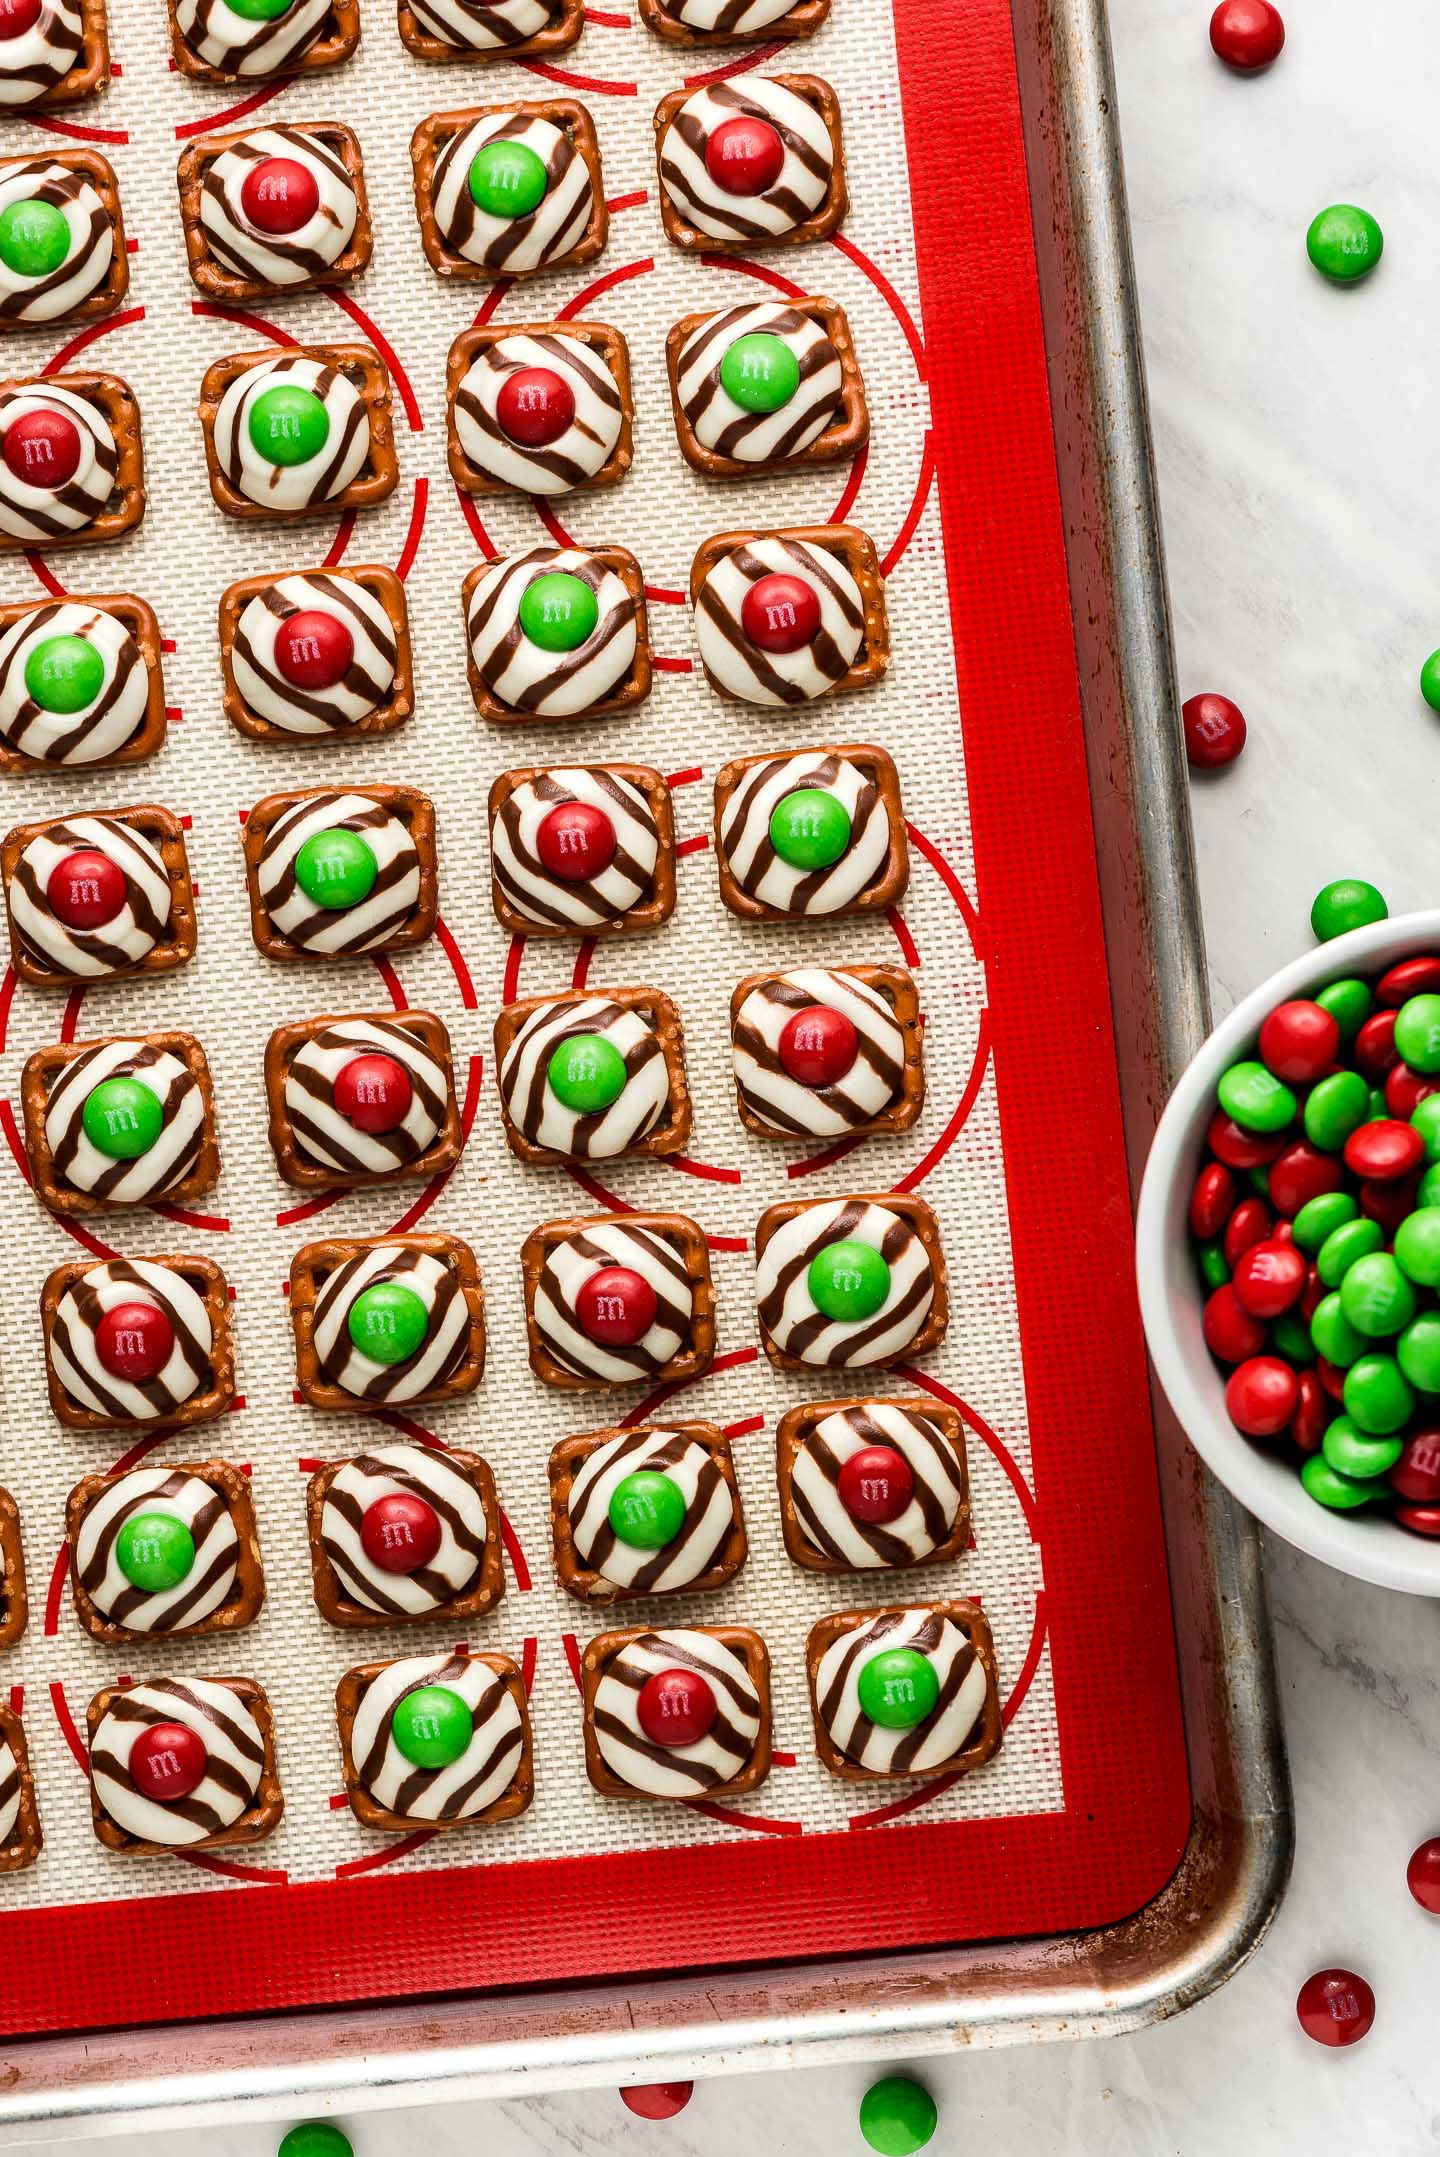 Christmas Pretzel Hugs on a silicone lined baking sheet with M&M's on the side.